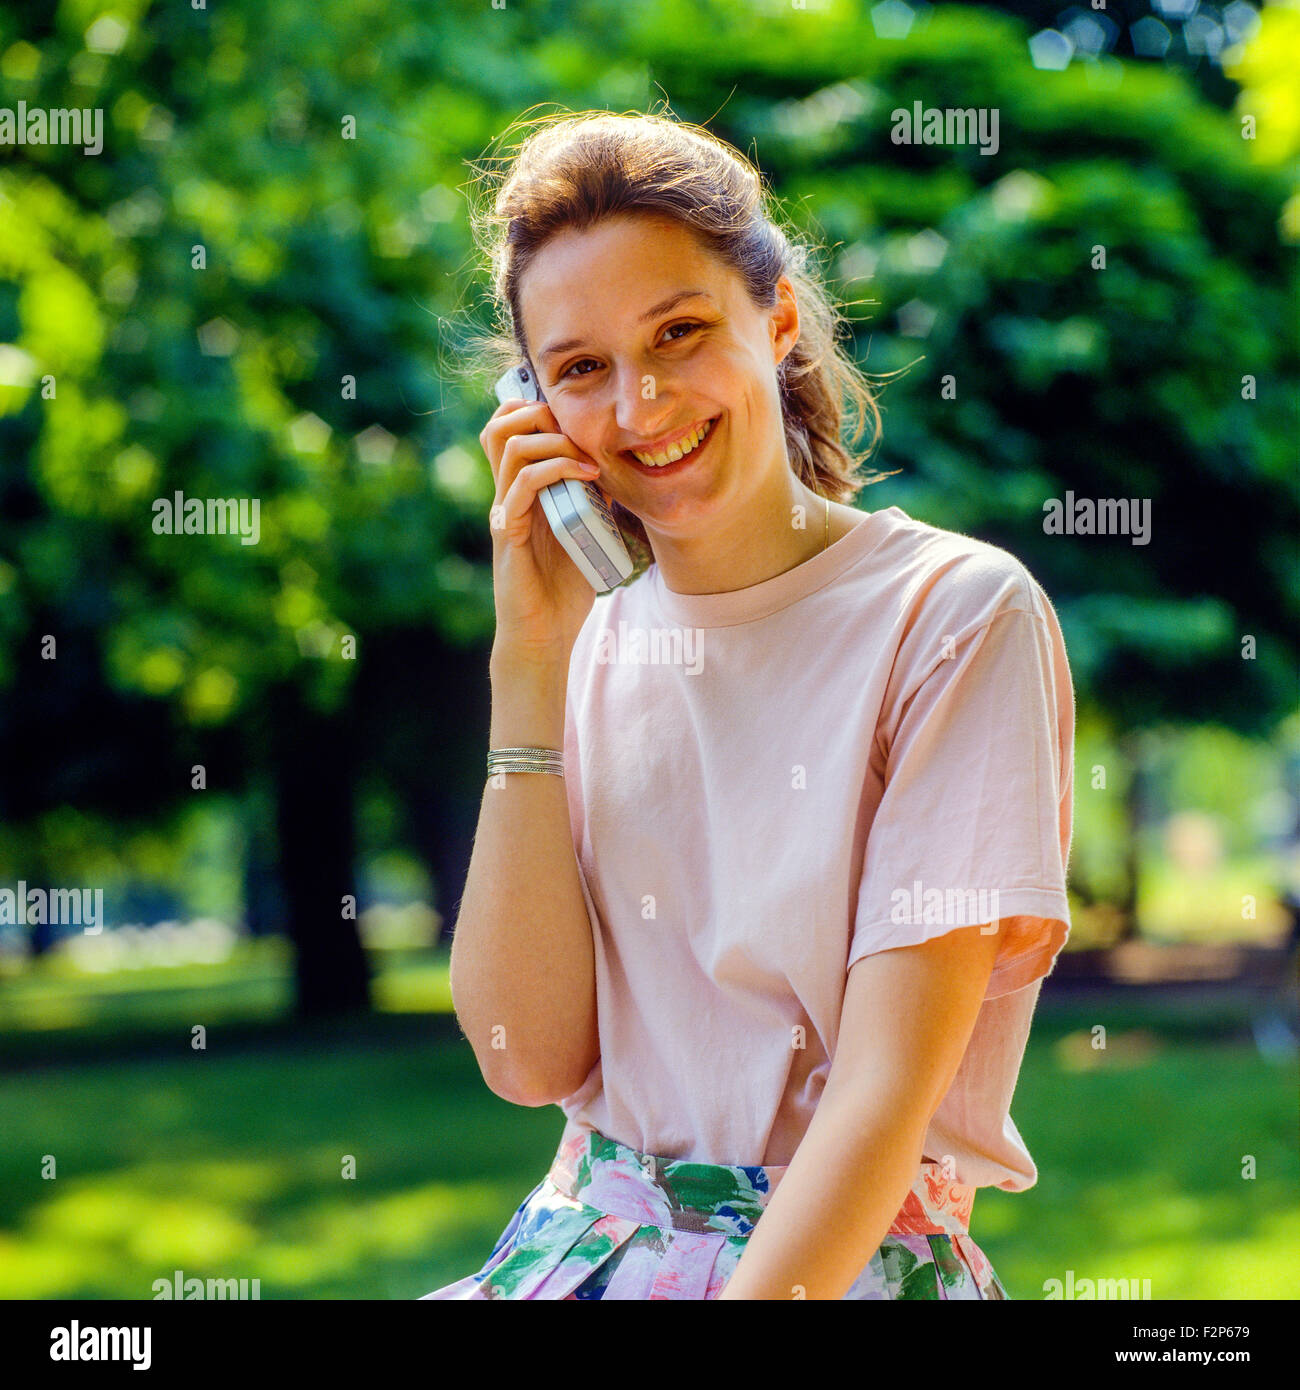 Smiling teenage girl talking on her cellular telephone in park, - Stock Image